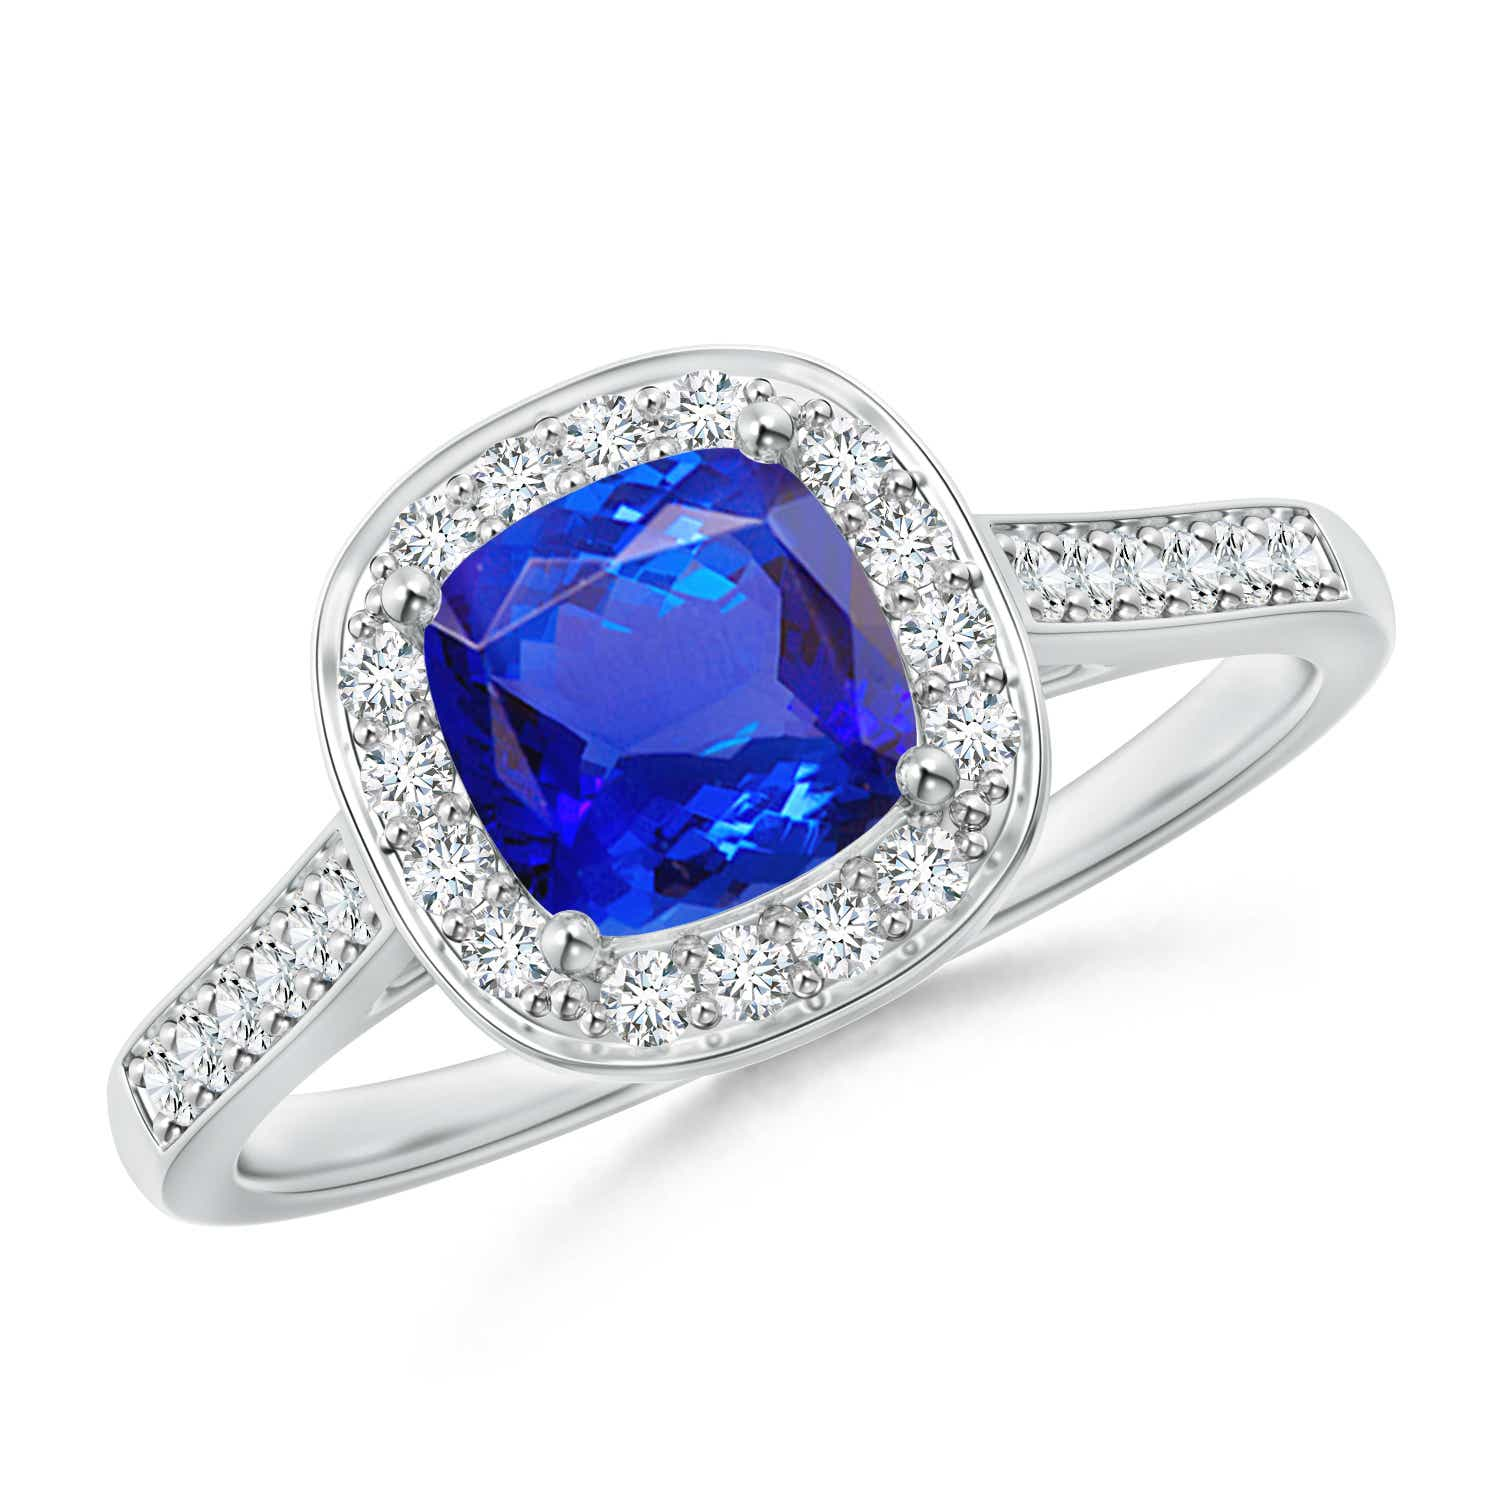 dsc engagement tanzanite beautiful meaningful the thought my it gemstone blue of piece fianc here i ring this most will designed bands alot was own put is and ever topic into jewellery